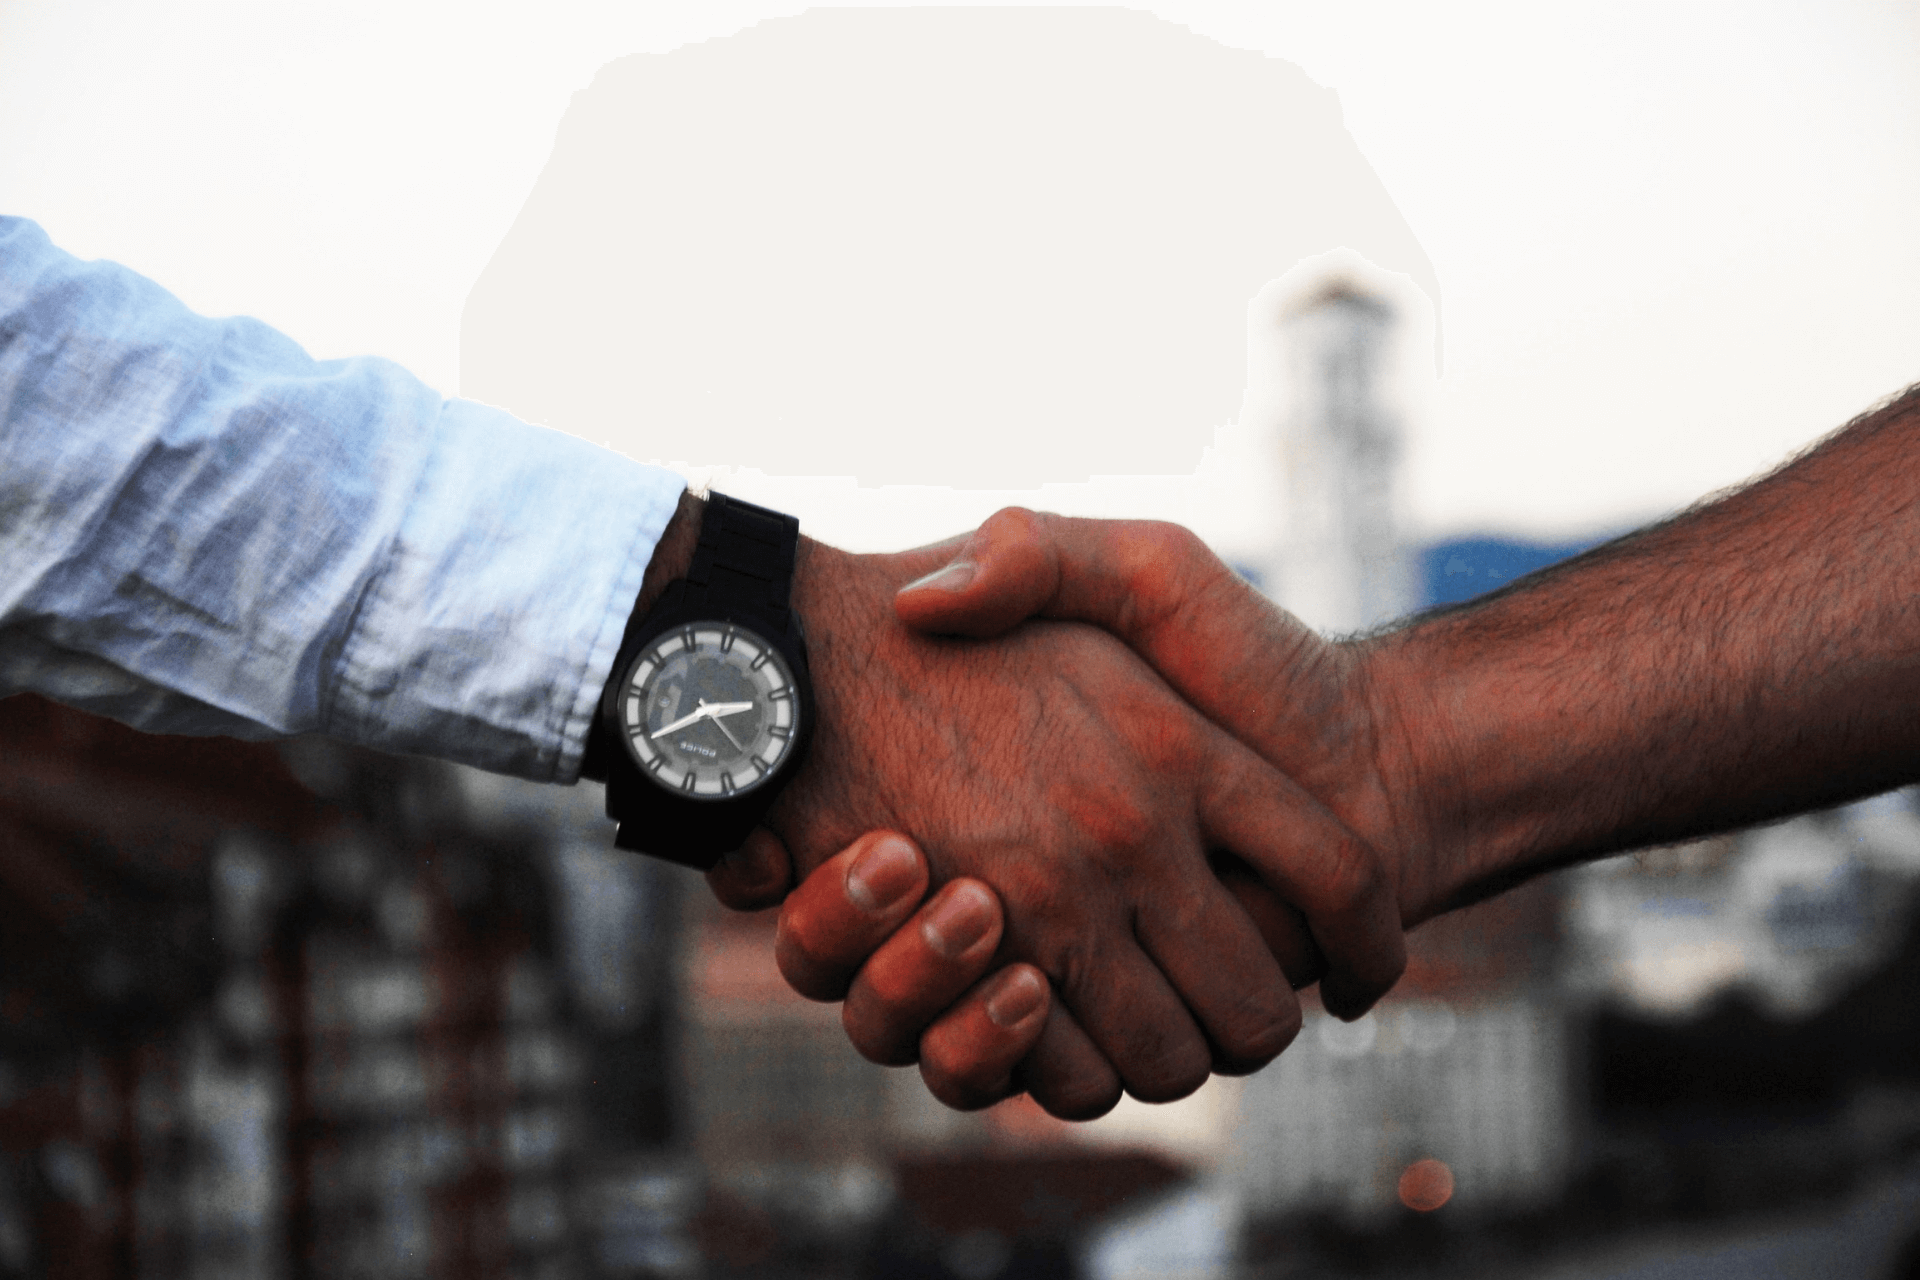 This image shows a handshake representing the beginning of a sponsorship